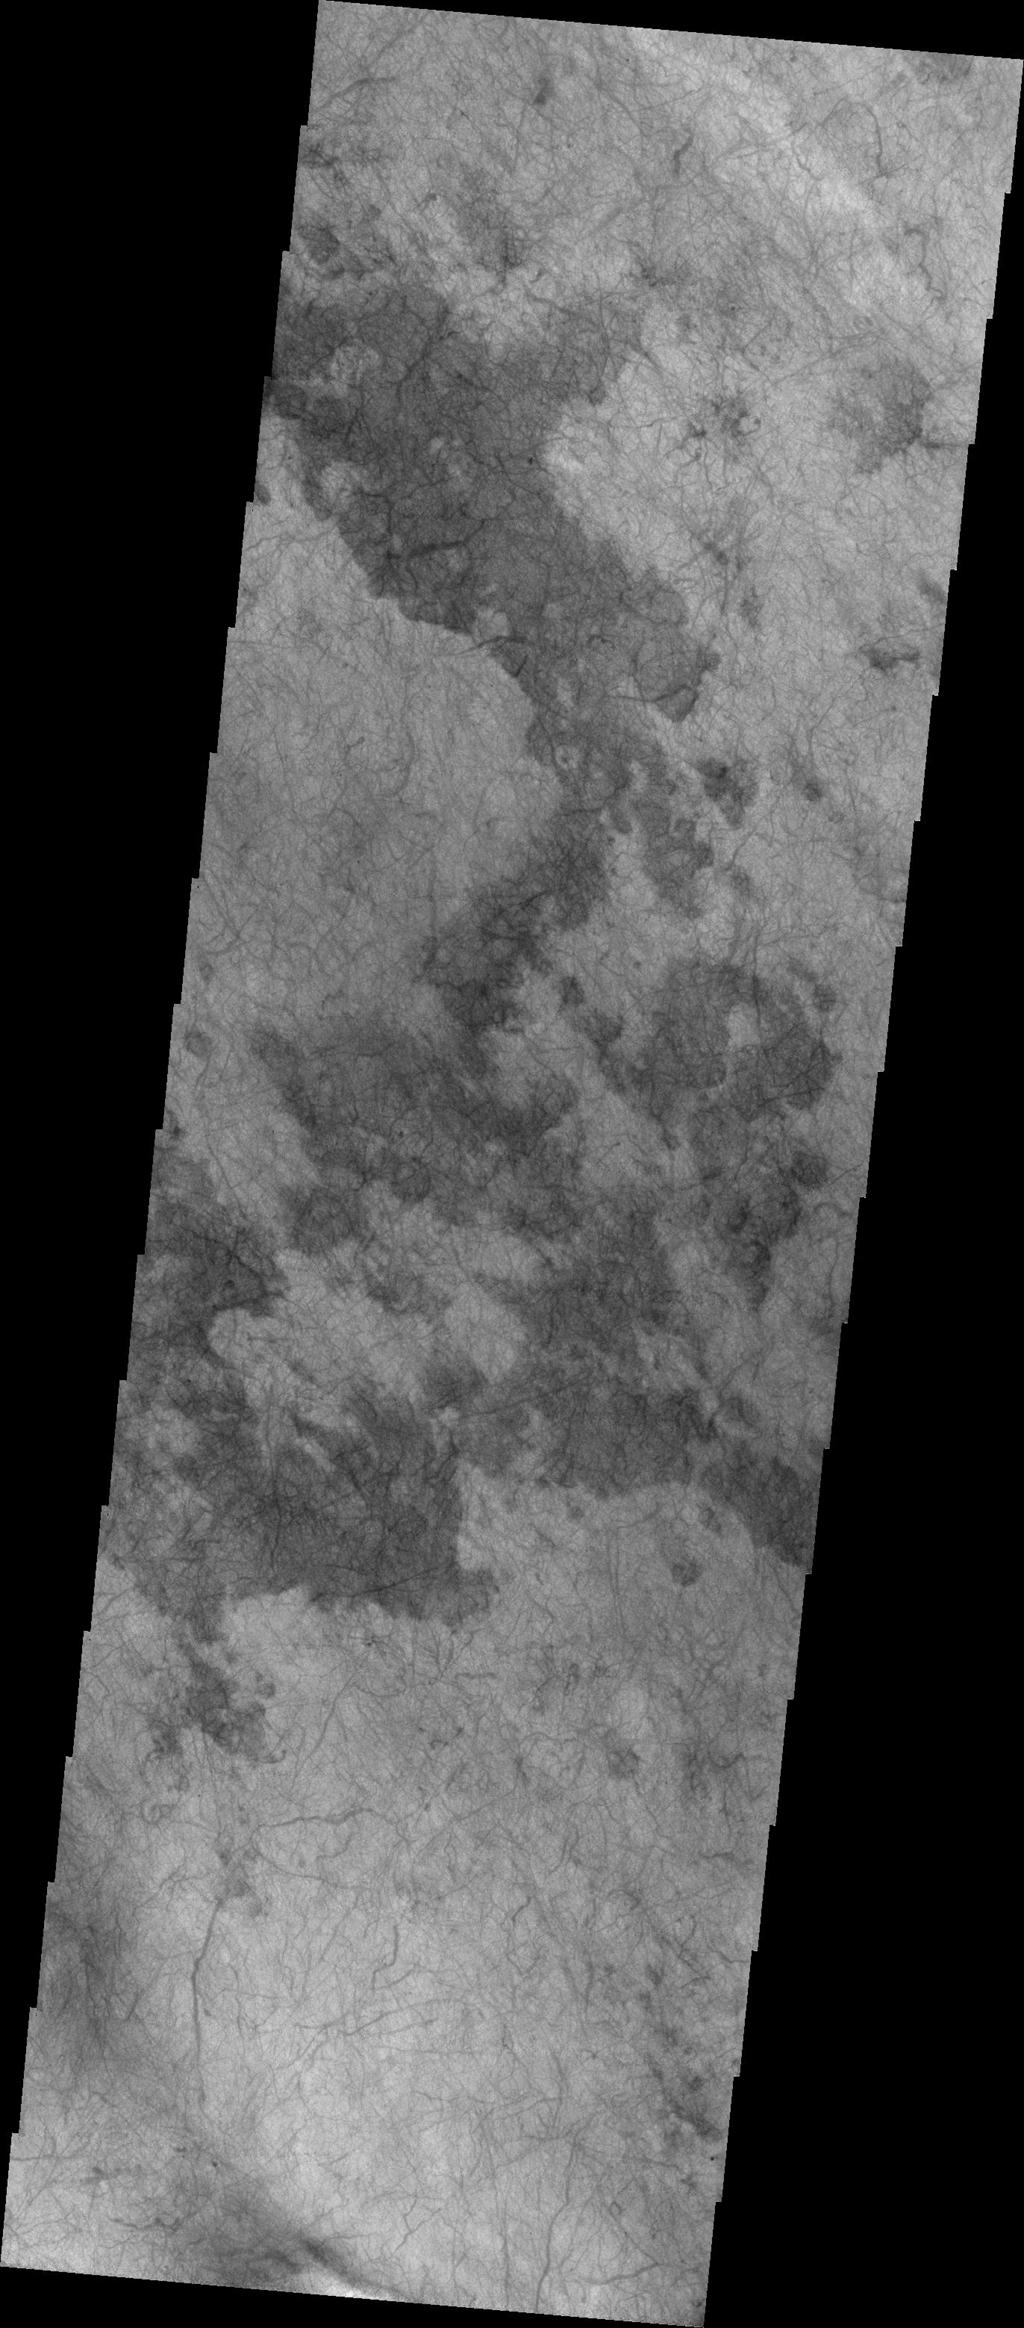 The dust devil tracks in this image are located in Terra Cimmeria.